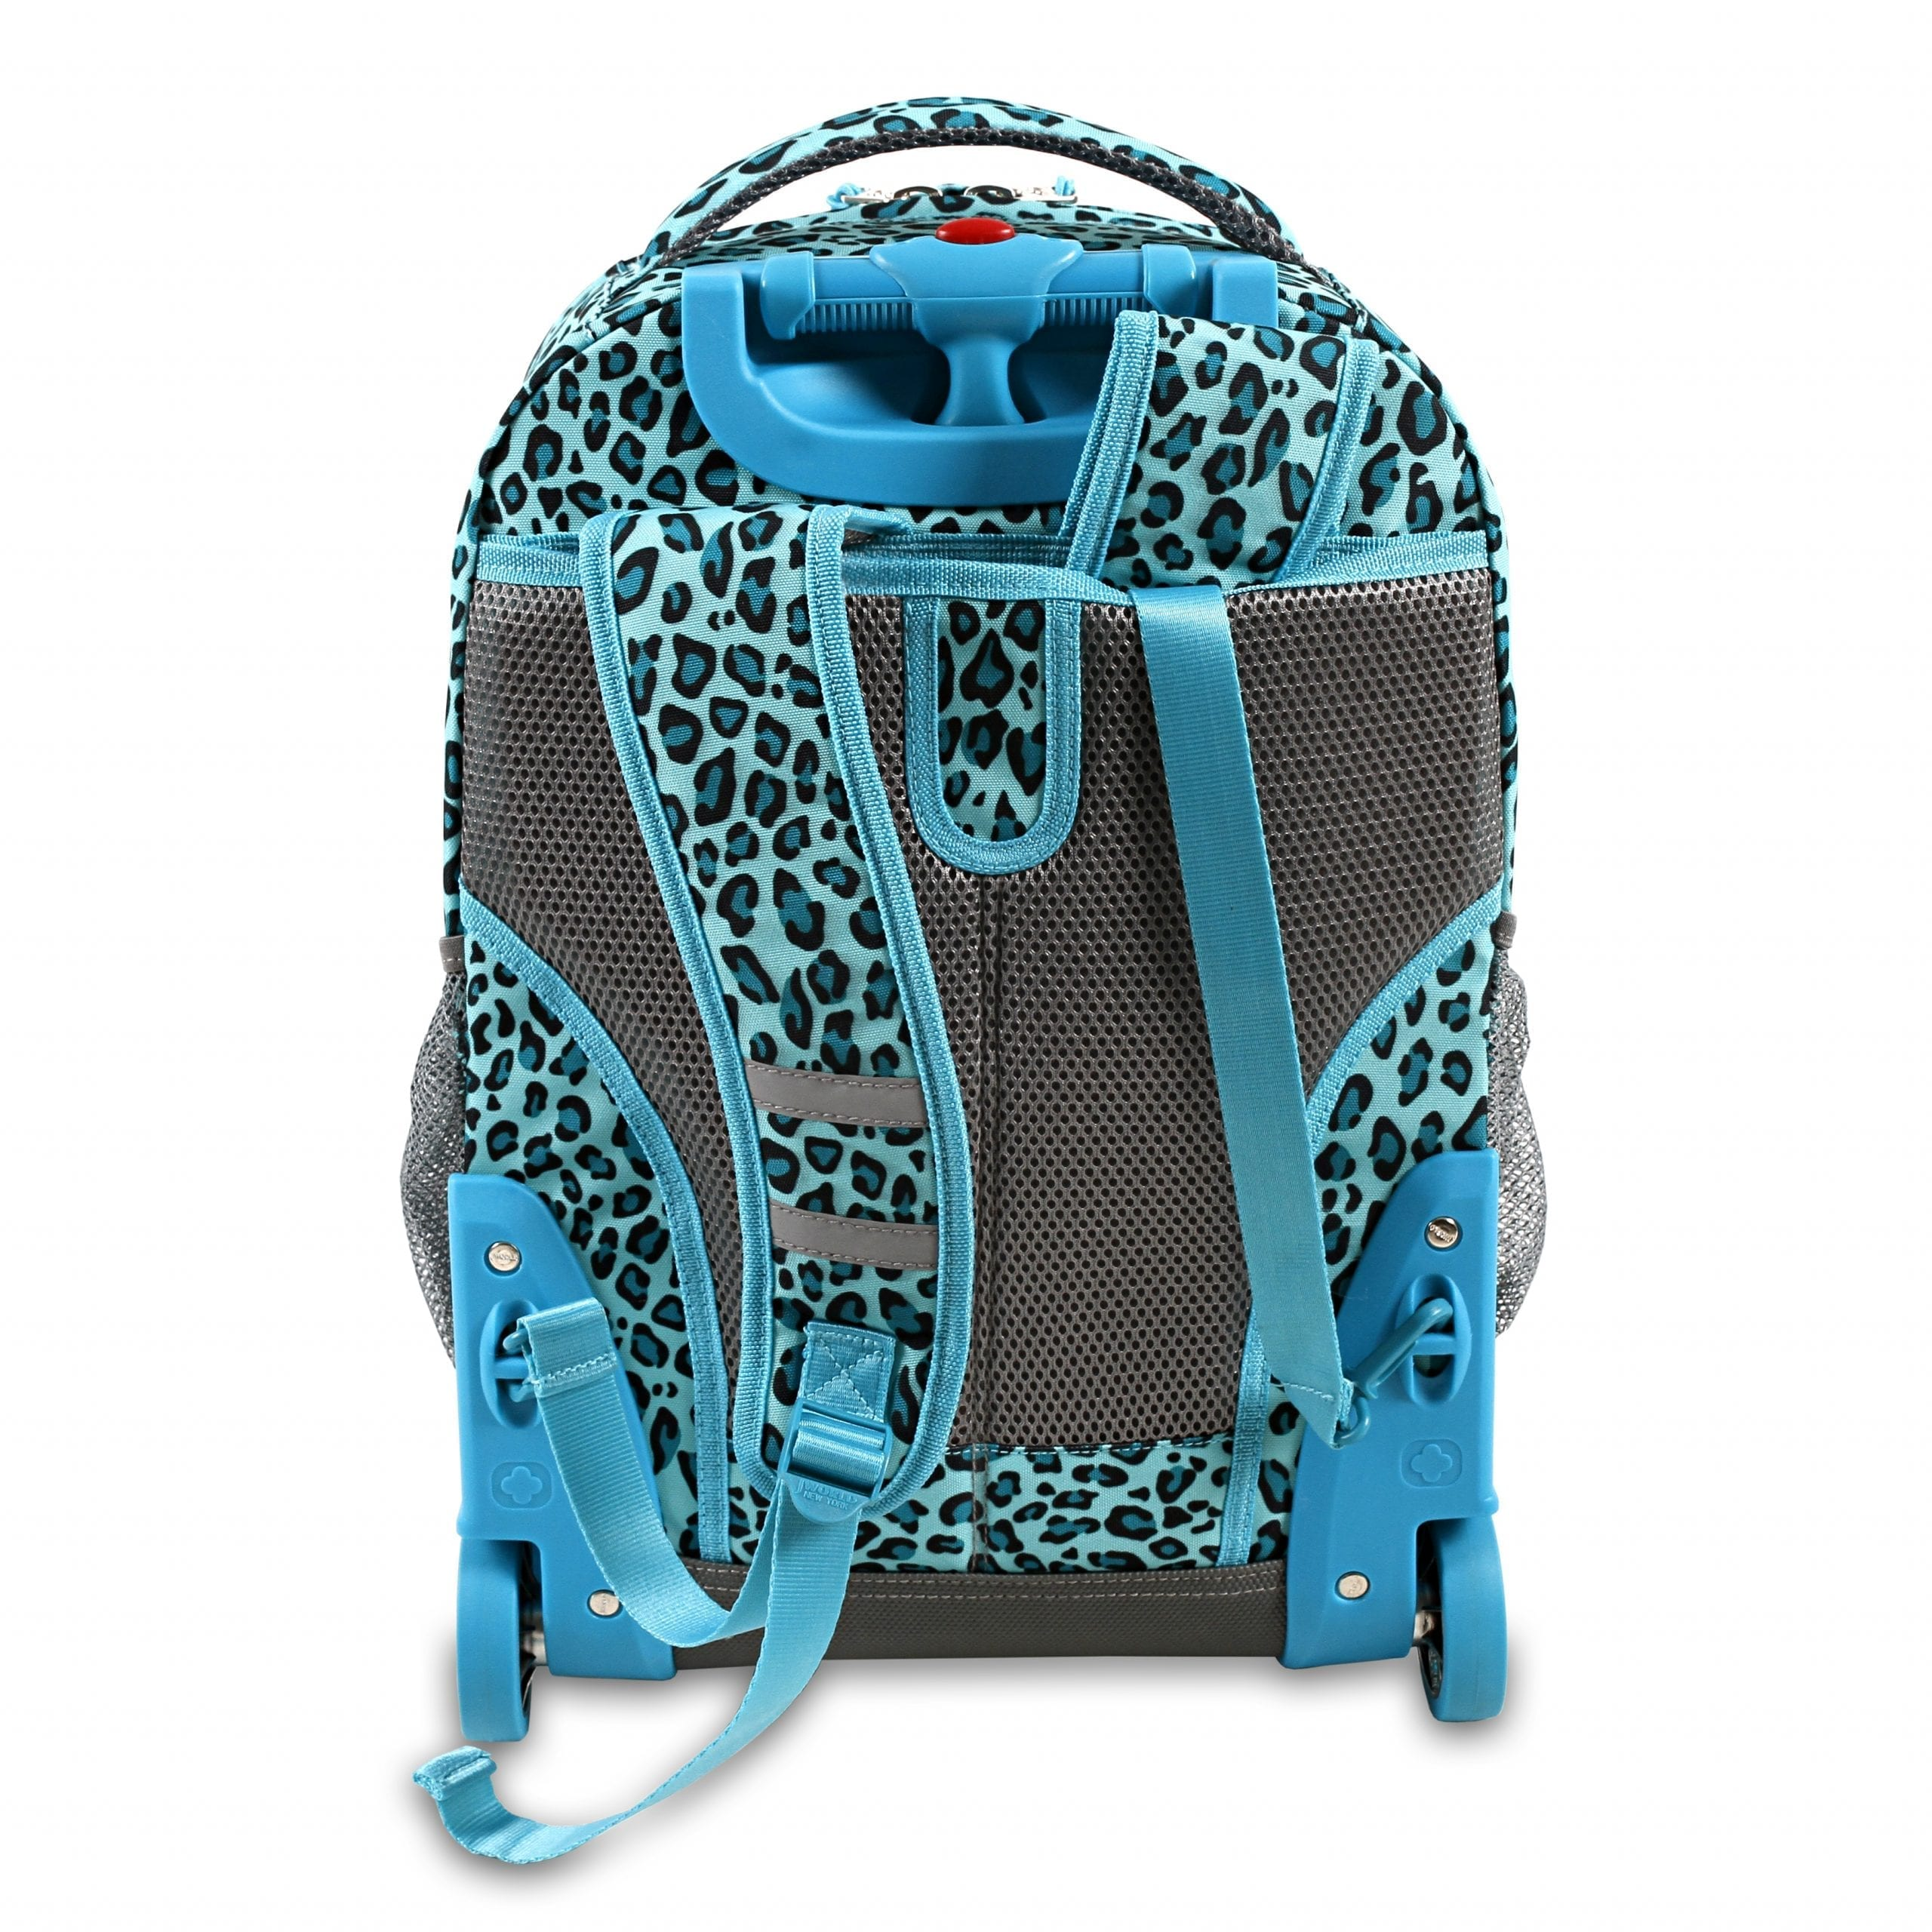 J World New York Rolling Backpack-Mint Leopard - Babybliss